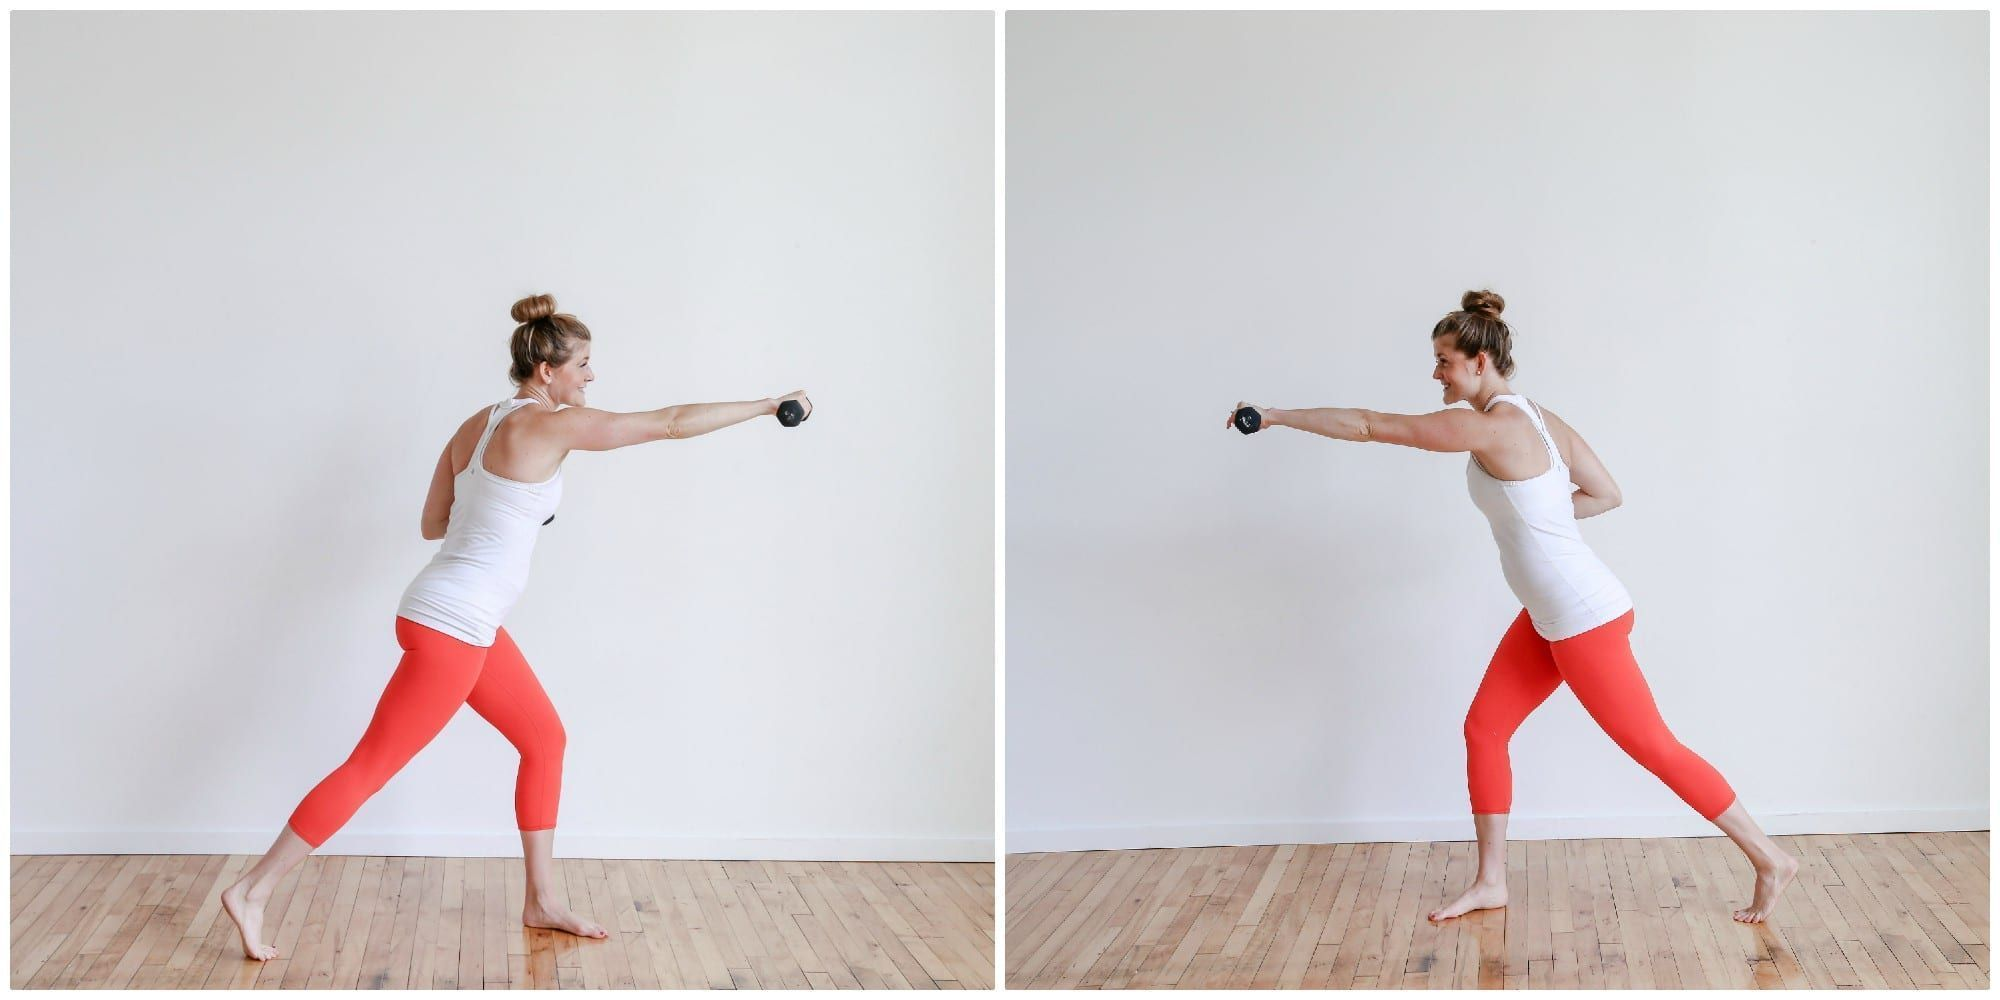 30-Minute Cardio Barre Boxing Workout #cardiobarre Punch + Tap #cardiobarre 30-Minute Cardio Barre Boxing Workout #cardiobarre Punch + Tap #cardiobarre 30-Minute Cardio Barre Boxing Workout #cardiobarre Punch + Tap #cardiobarre 30-Minute Cardio Barre Boxing Workout #cardiobarre Punch + Tap #cardiobarre 30-Minute Cardio Barre Boxing Workout #cardiobarre Punch + Tap #cardiobarre 30-Minute Cardio Barre Boxing Workout #cardiobarre Punch + Tap #cardiobarre 30-Minute Cardio Barre Boxing Workout #cardi #cardiobarre